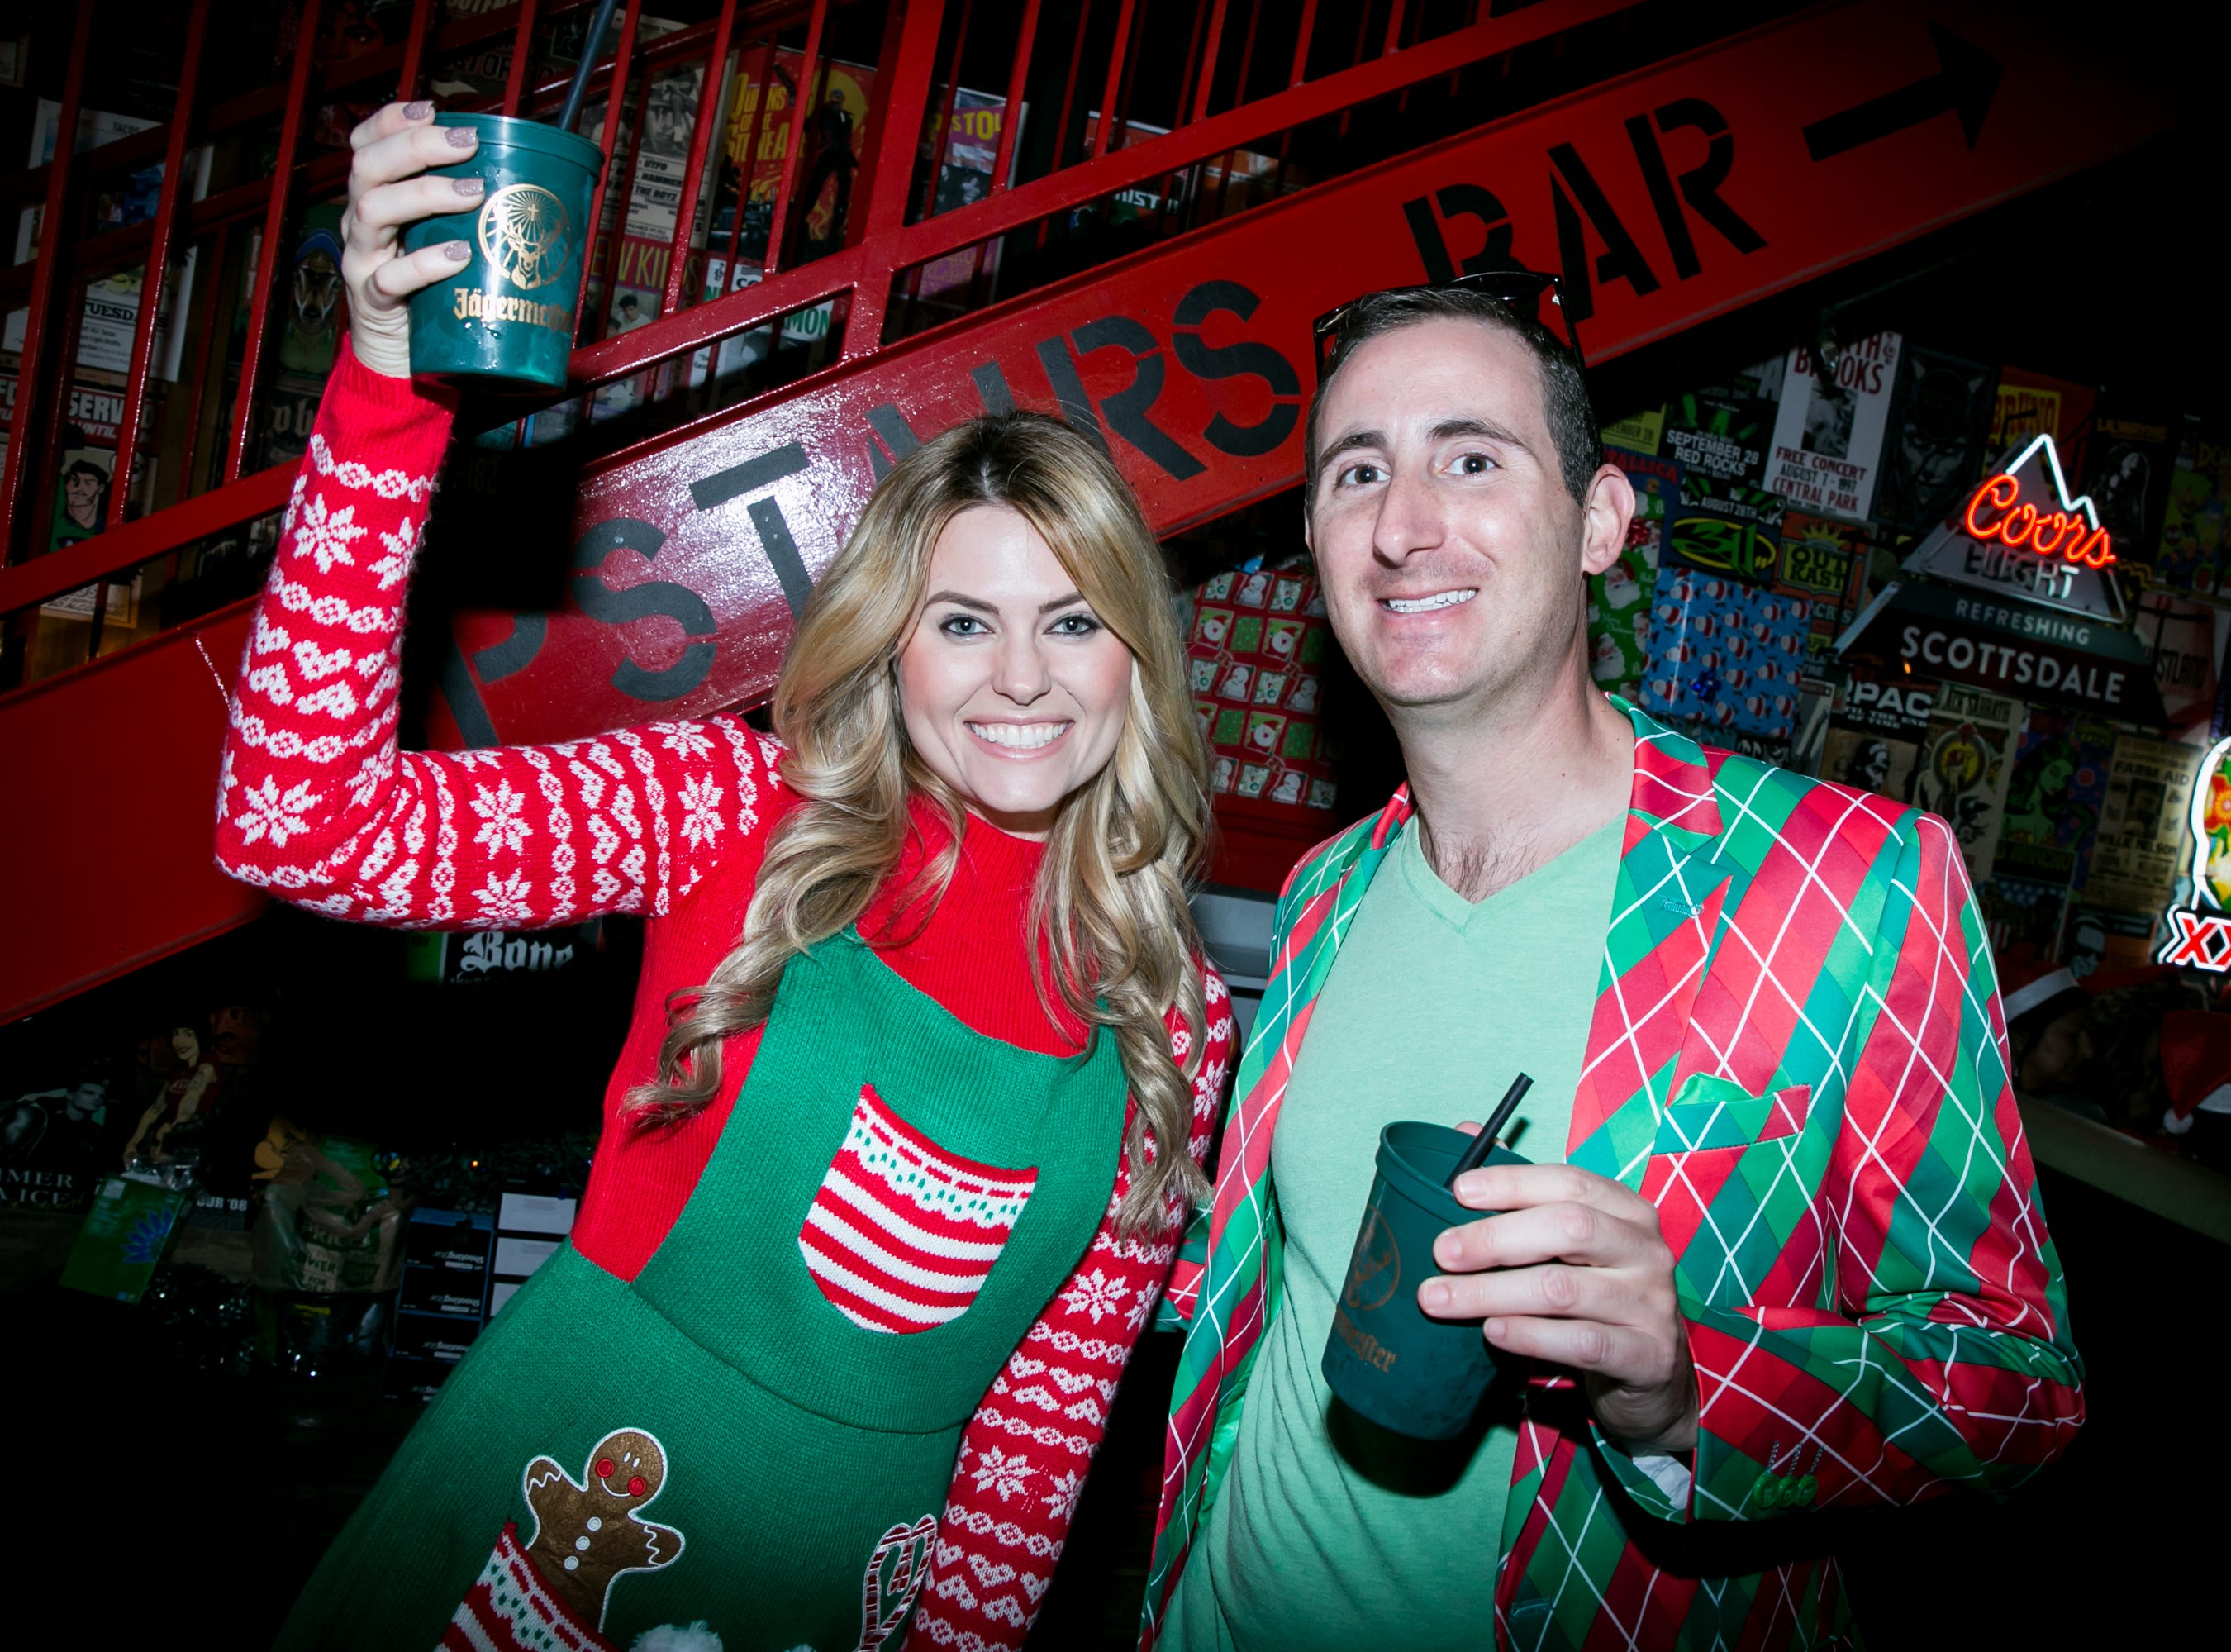 These two celebrated the most wonderful time of the year during the Scottsdale Santa Crawl at Old Town Gringos on Saturday, December 8, 2018.